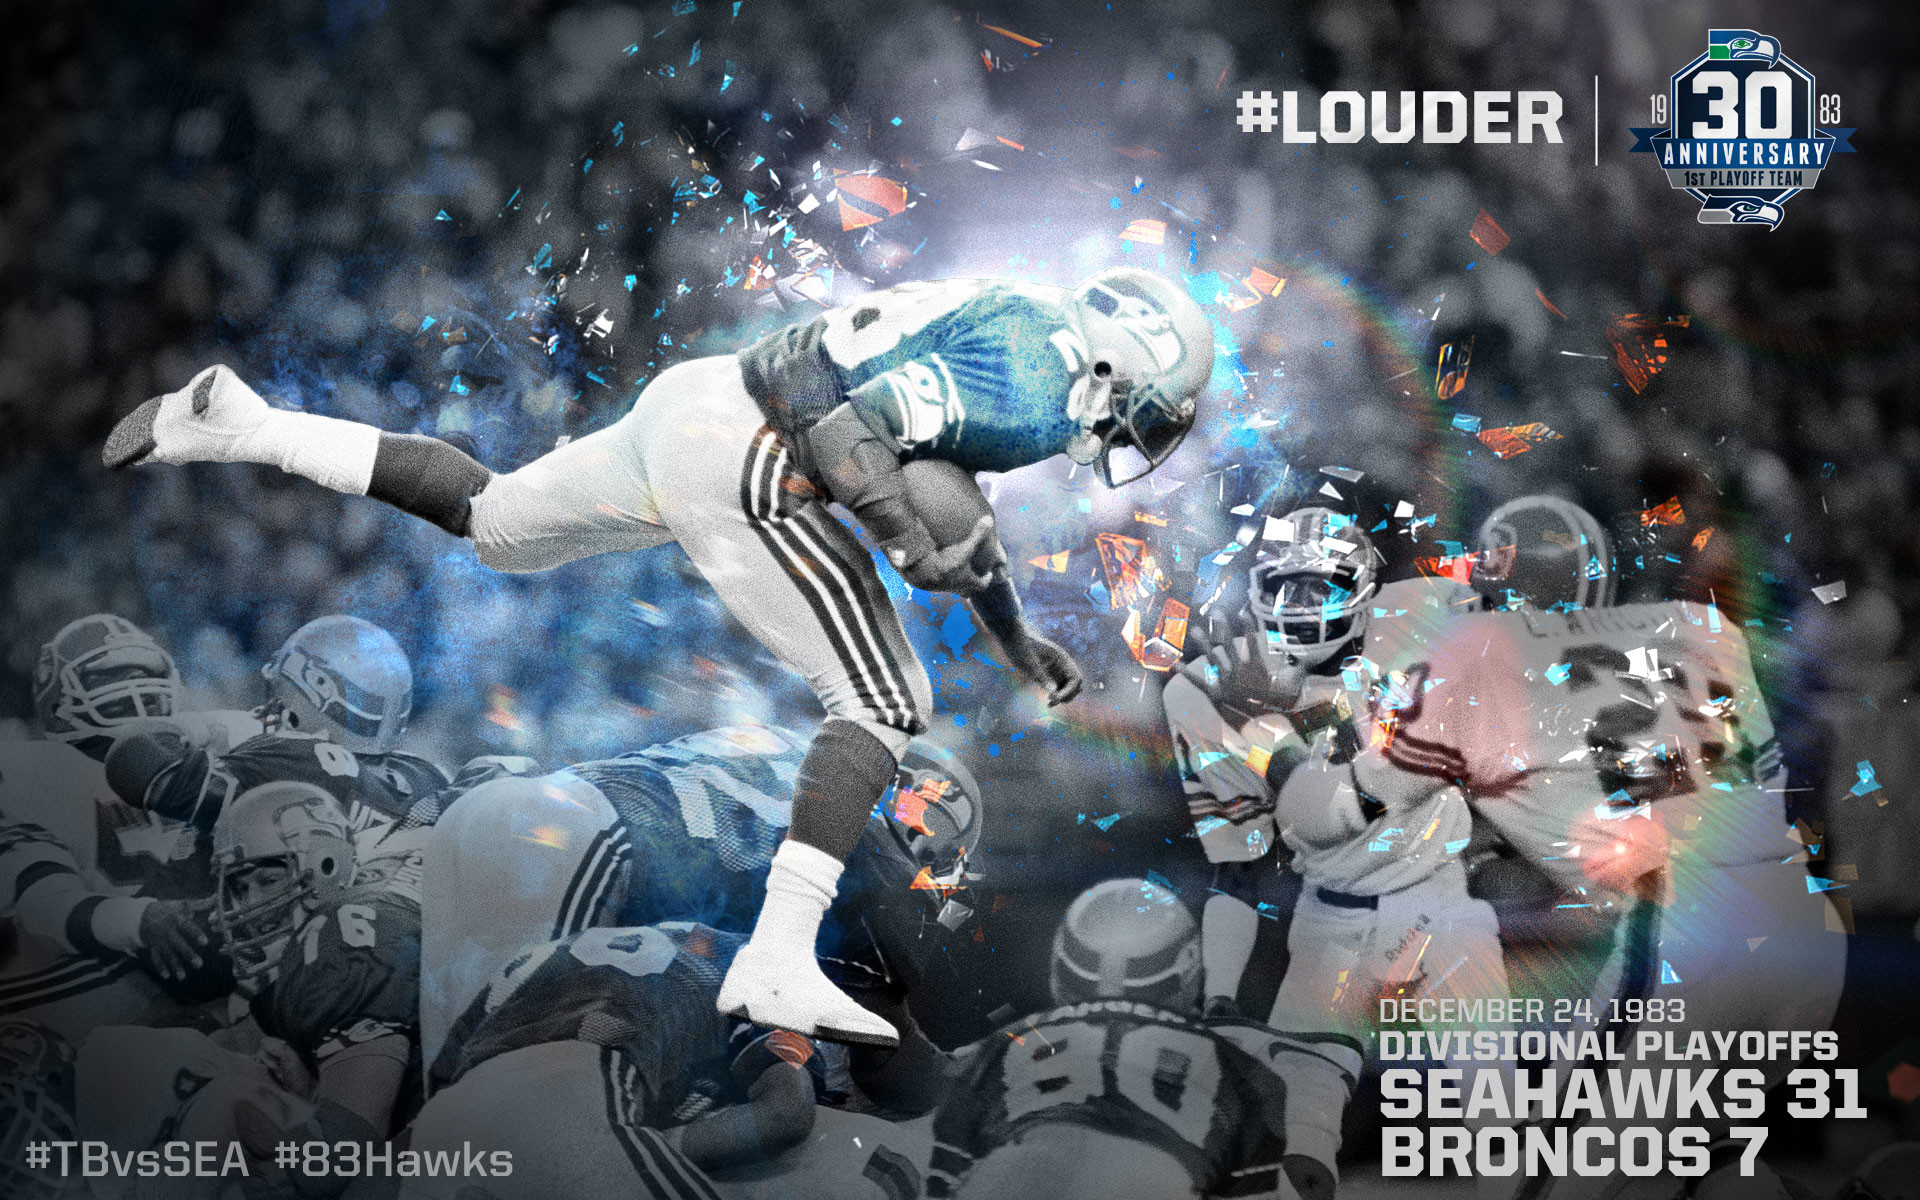 1920x1200 seattle seahawks wallpaper border - photo #44. 1000+ images about #LOUDER  on Pinterest